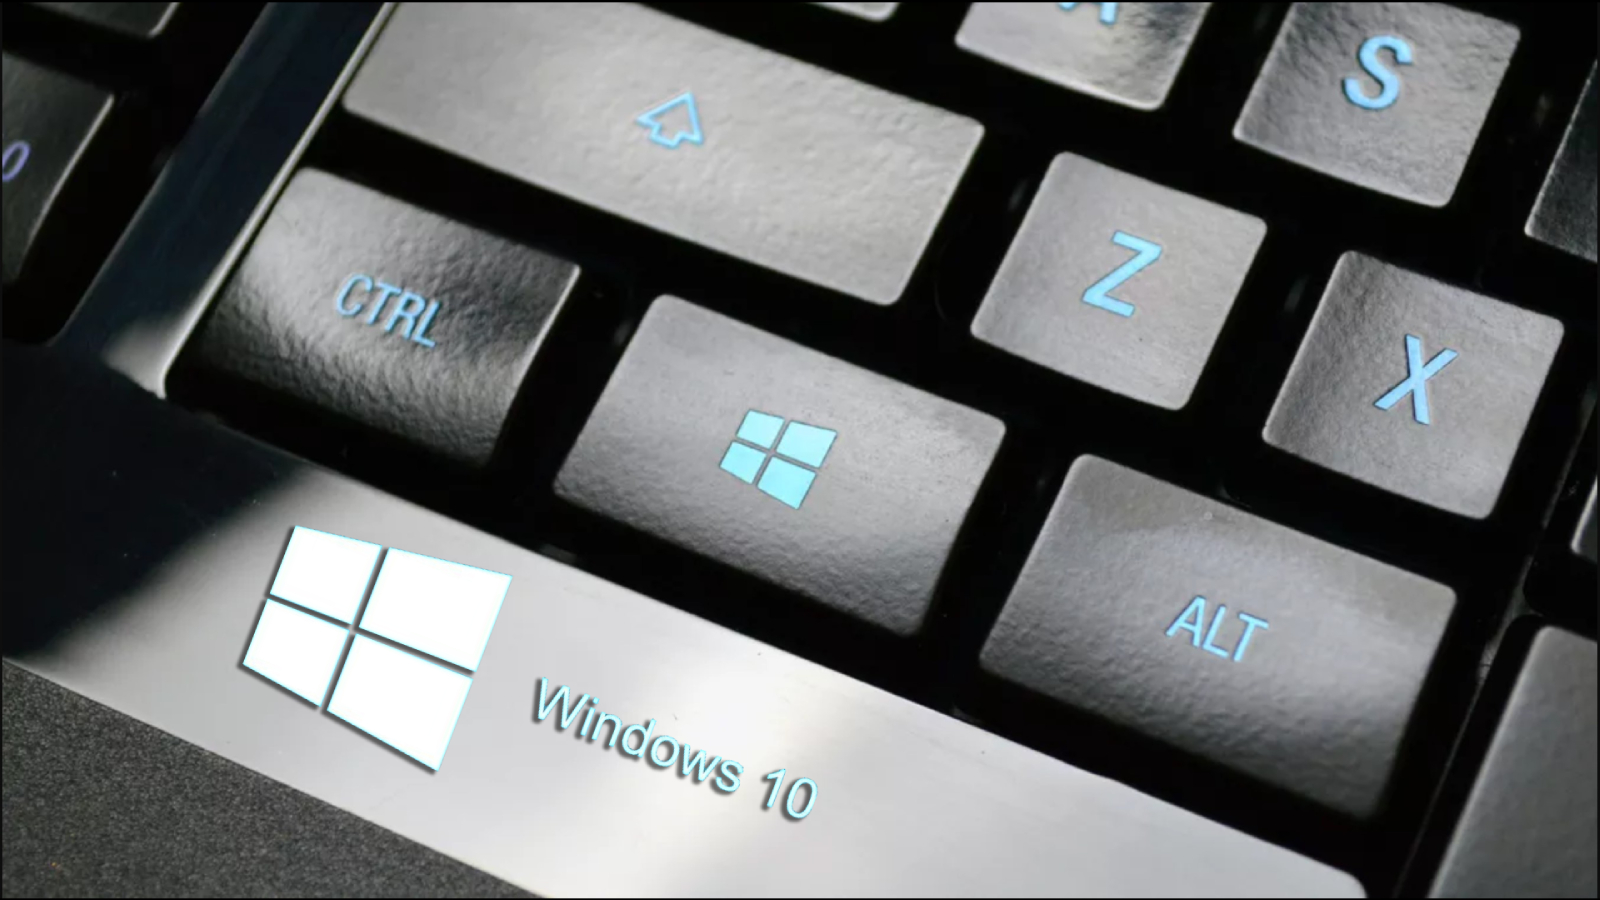 Windows 10 could get biggest update ever: Here is what to expect